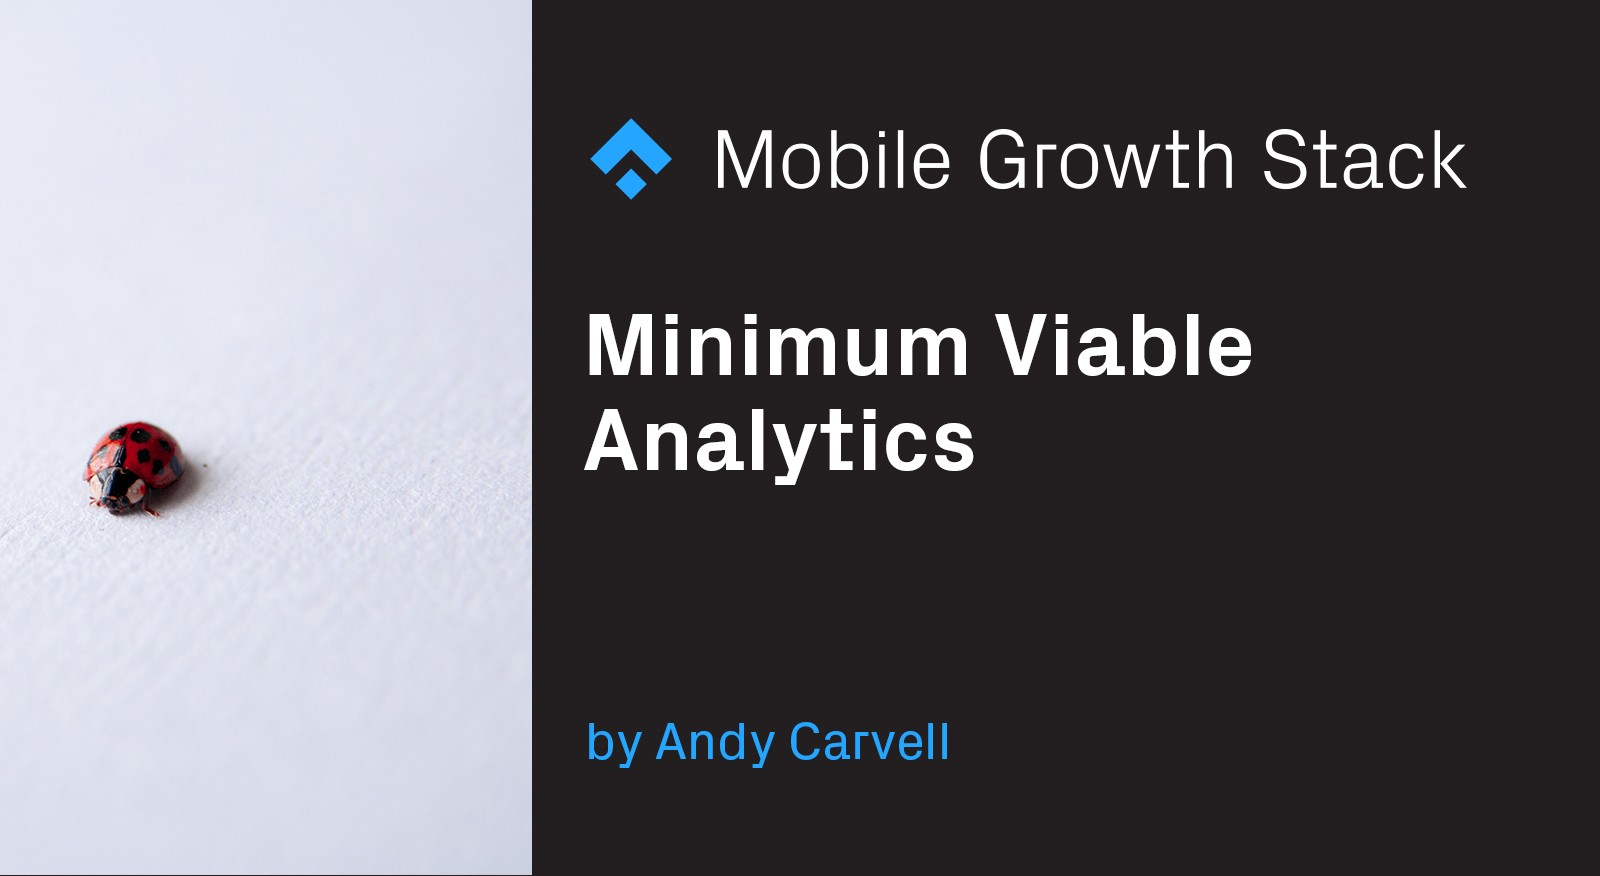 Minimum Viable Analytics The Mobile Growth Stack